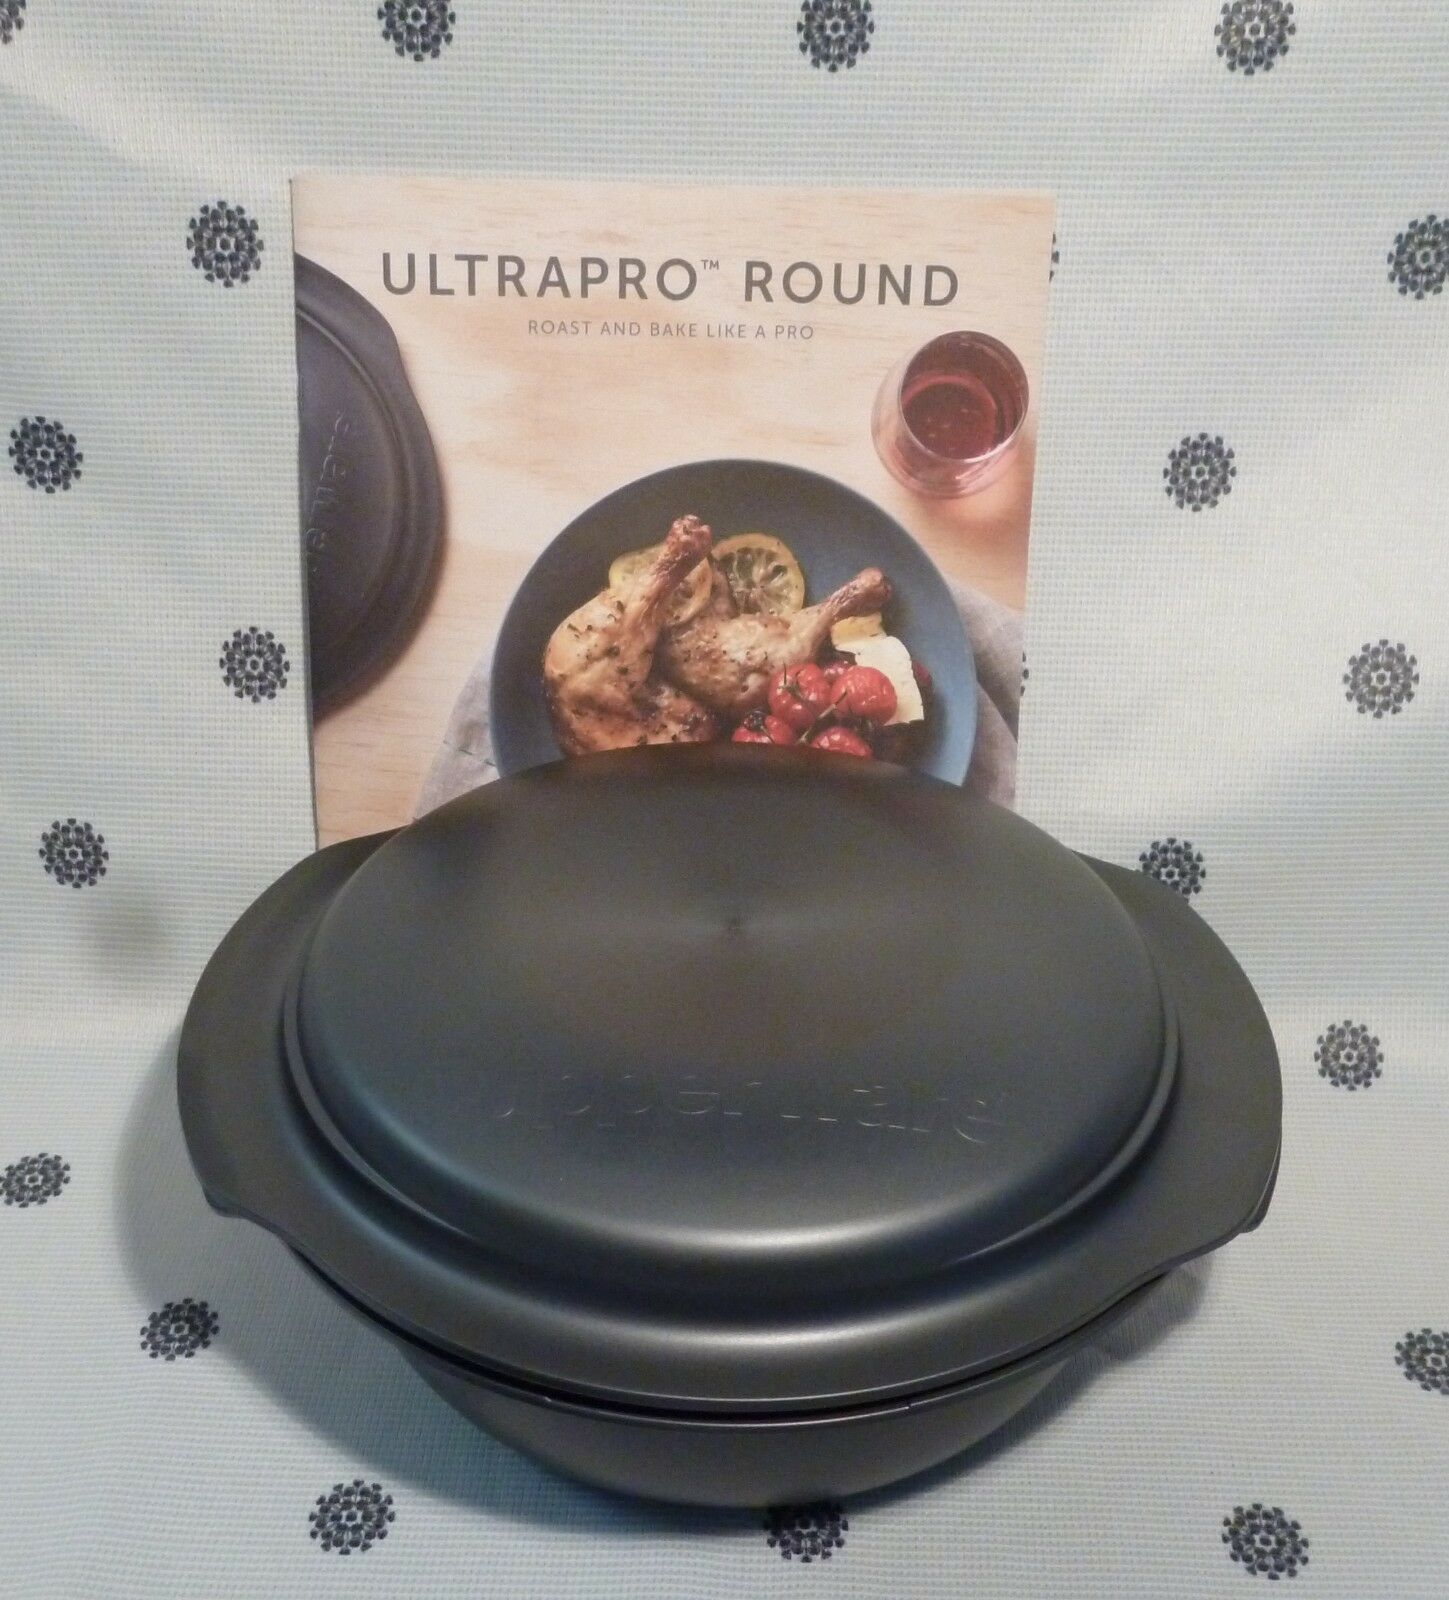 Tupperware UltraPro 2.5L Round Microwave Ovenware Bake   153 New